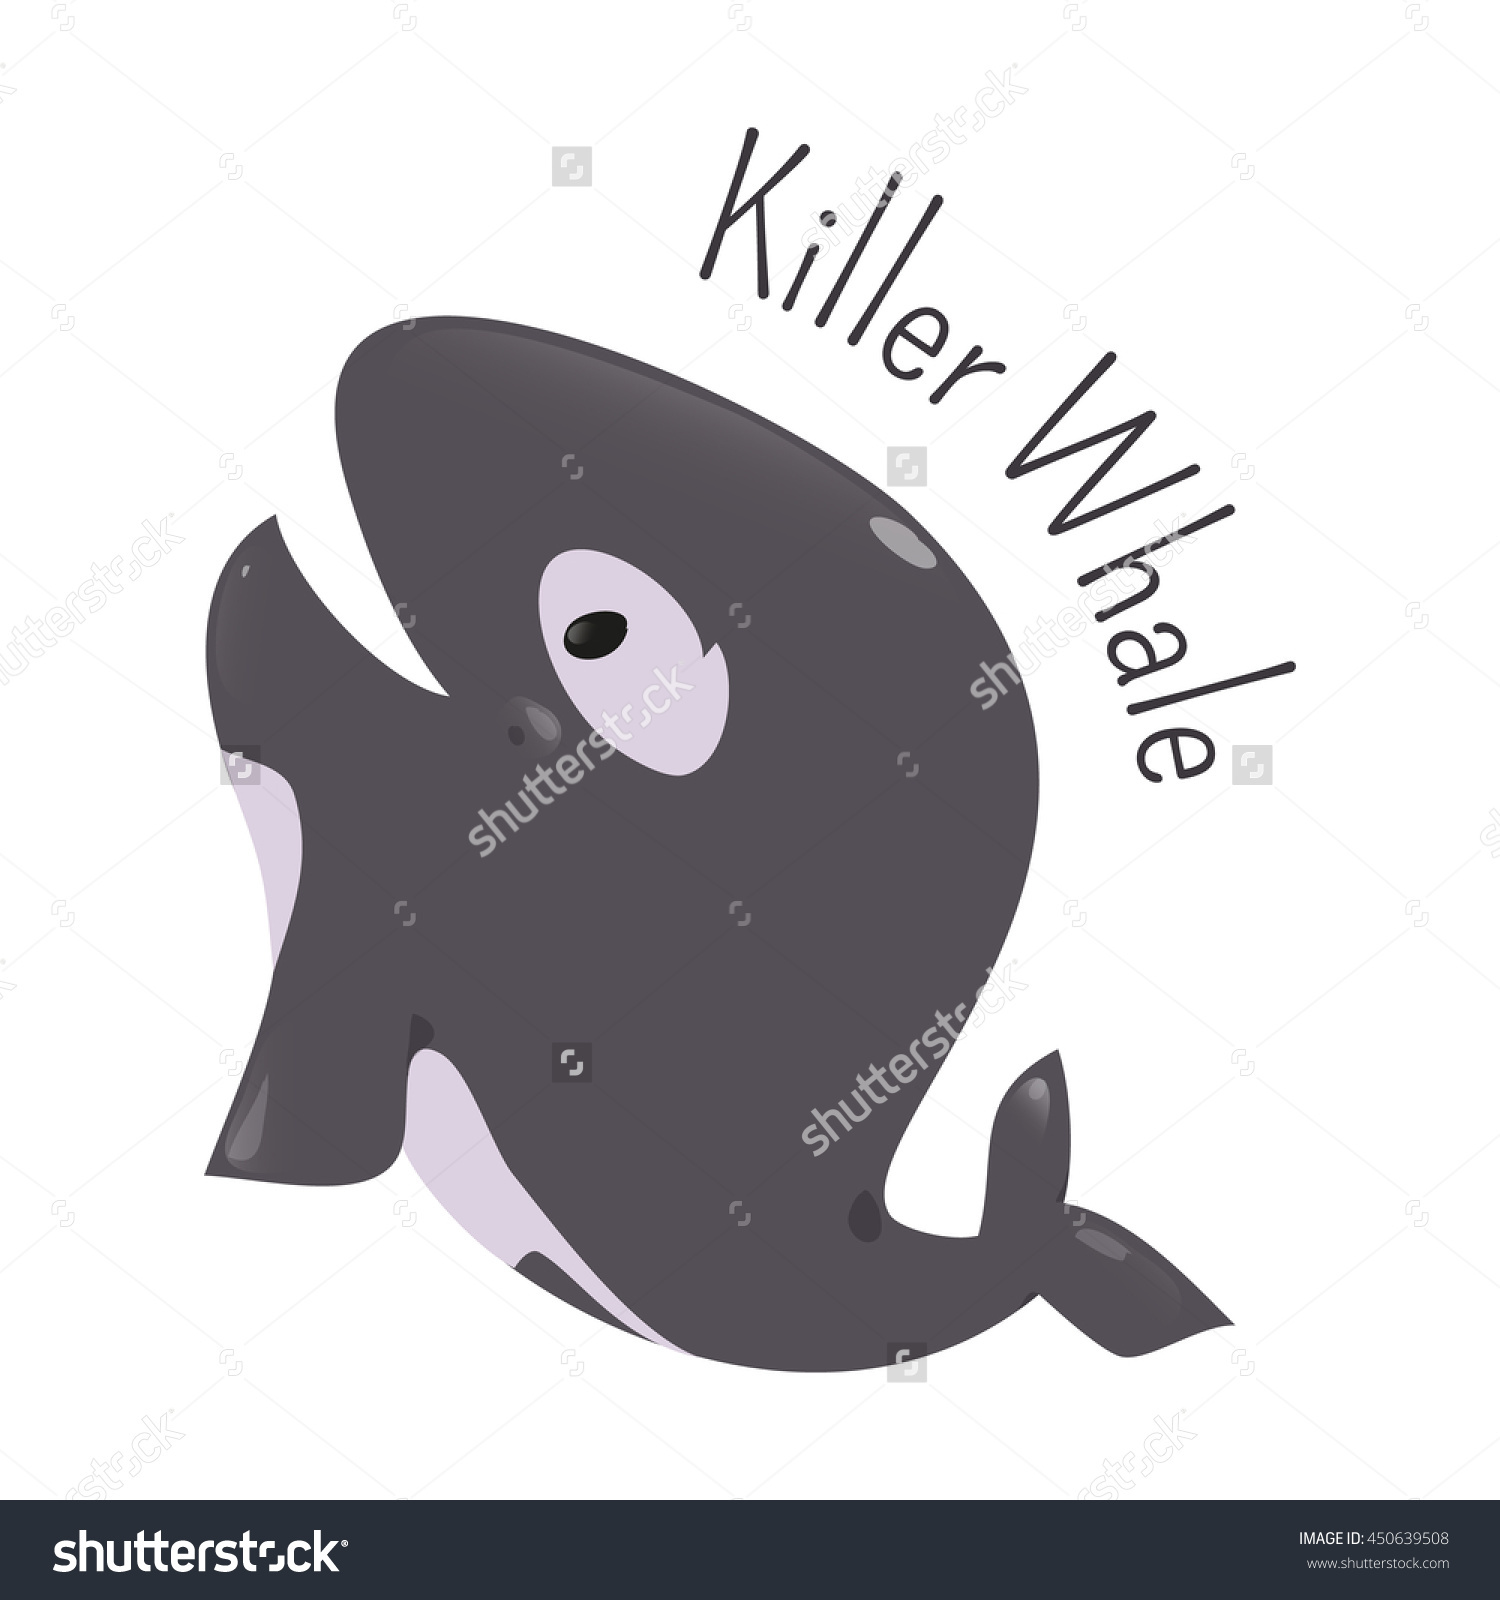 Killer Whale Isolated. Orca. Orcinus. Large Toothed Animal.